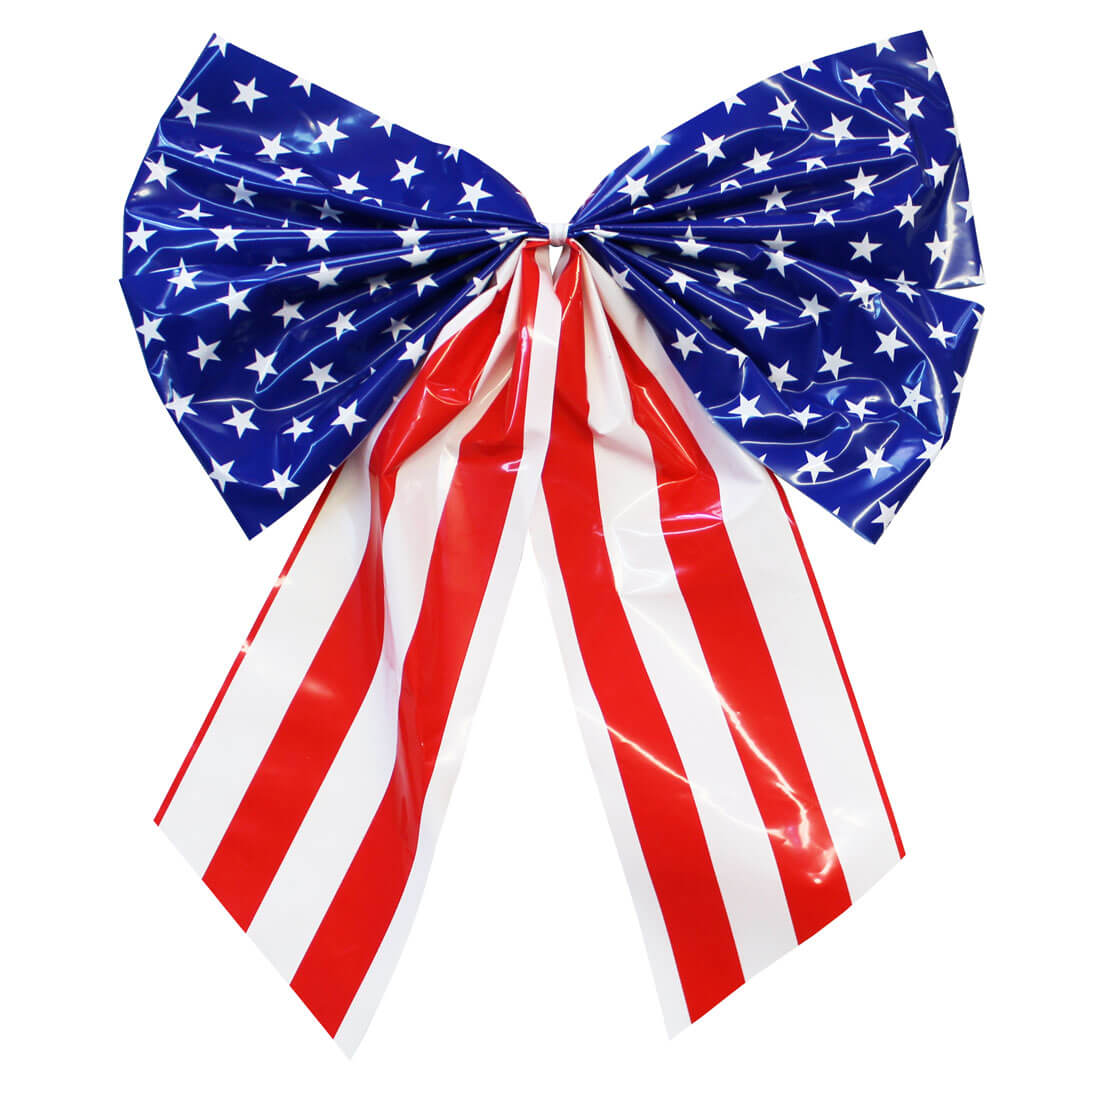 American ribbon bow banner clipart image royalty free library 4-Loop Flag Bow image royalty free library